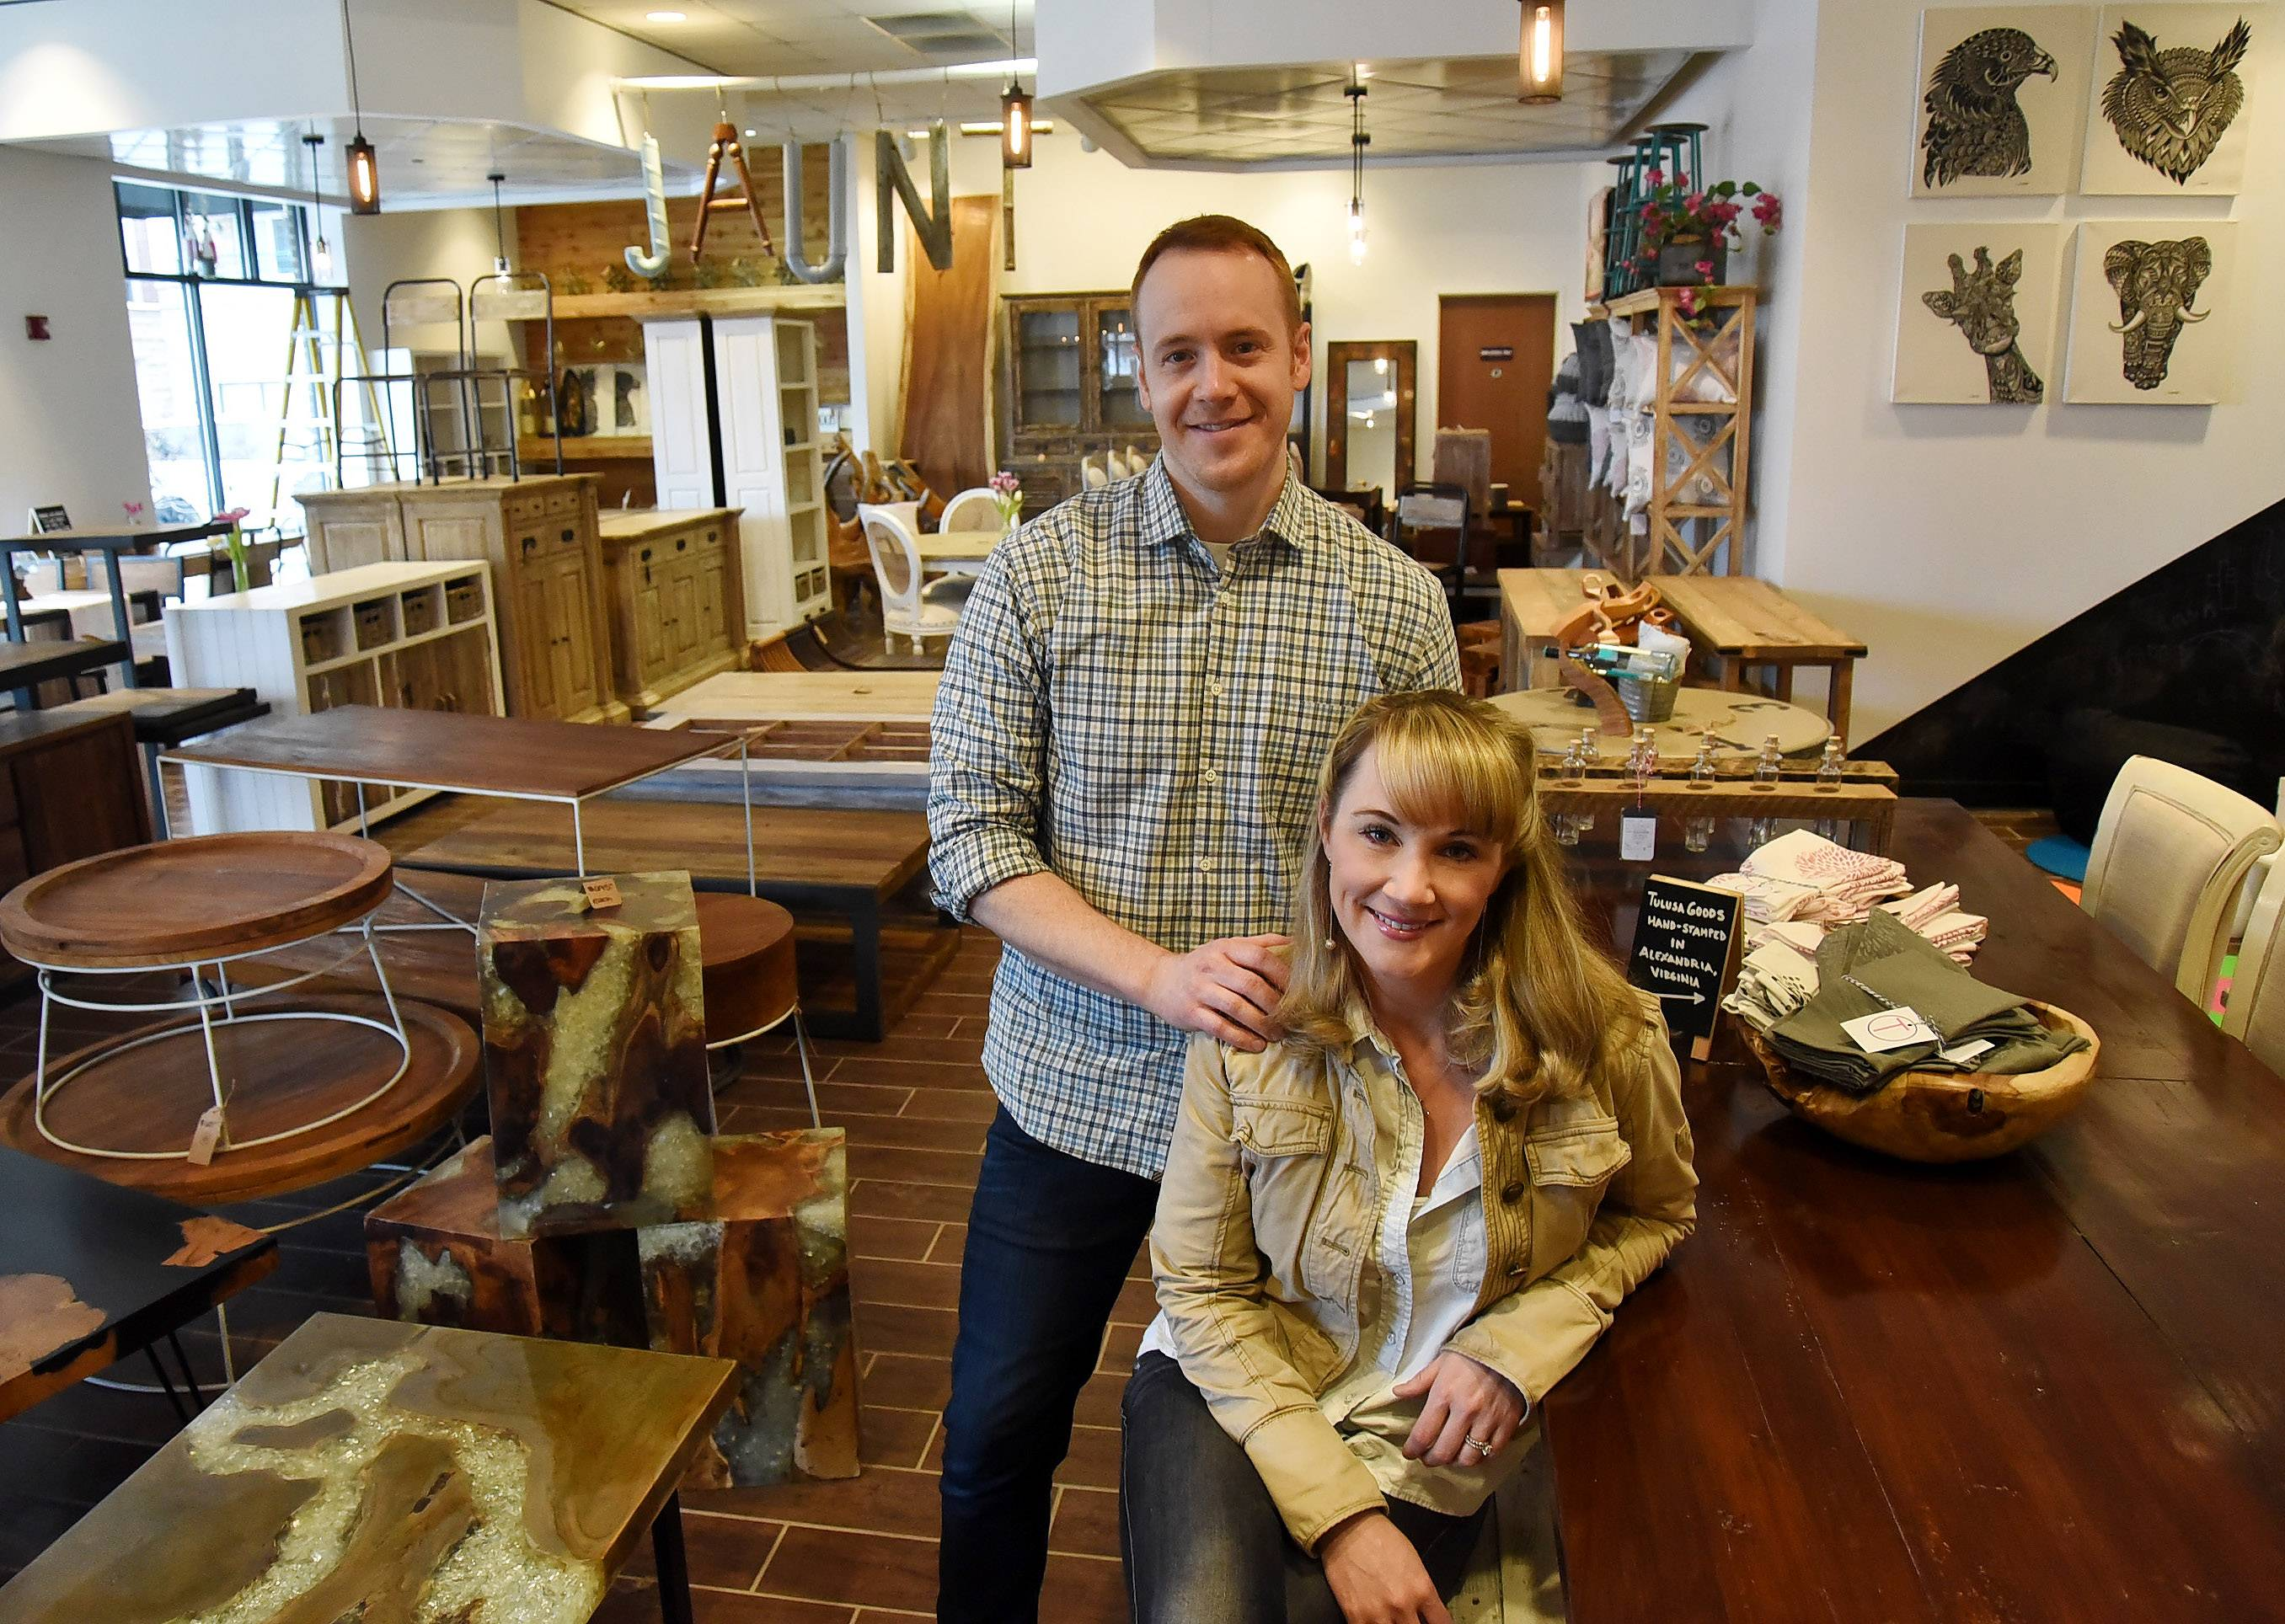 Attrayant Mark And Tory Orlando Of Jaunt Furniture In Arlington Heights.